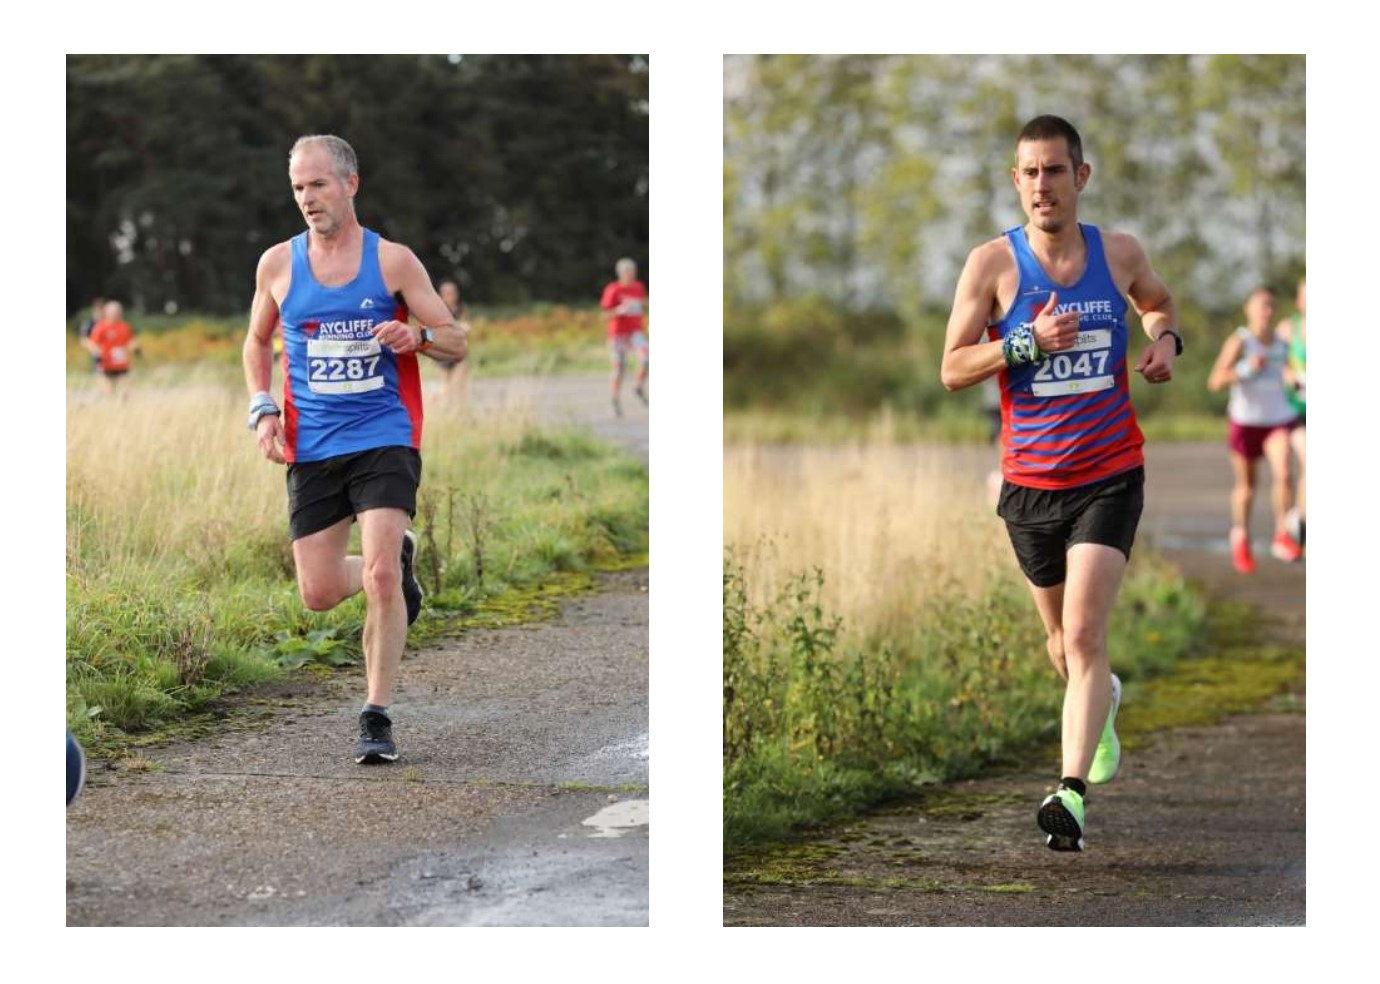 Dez & Richard C - Elvington 10k